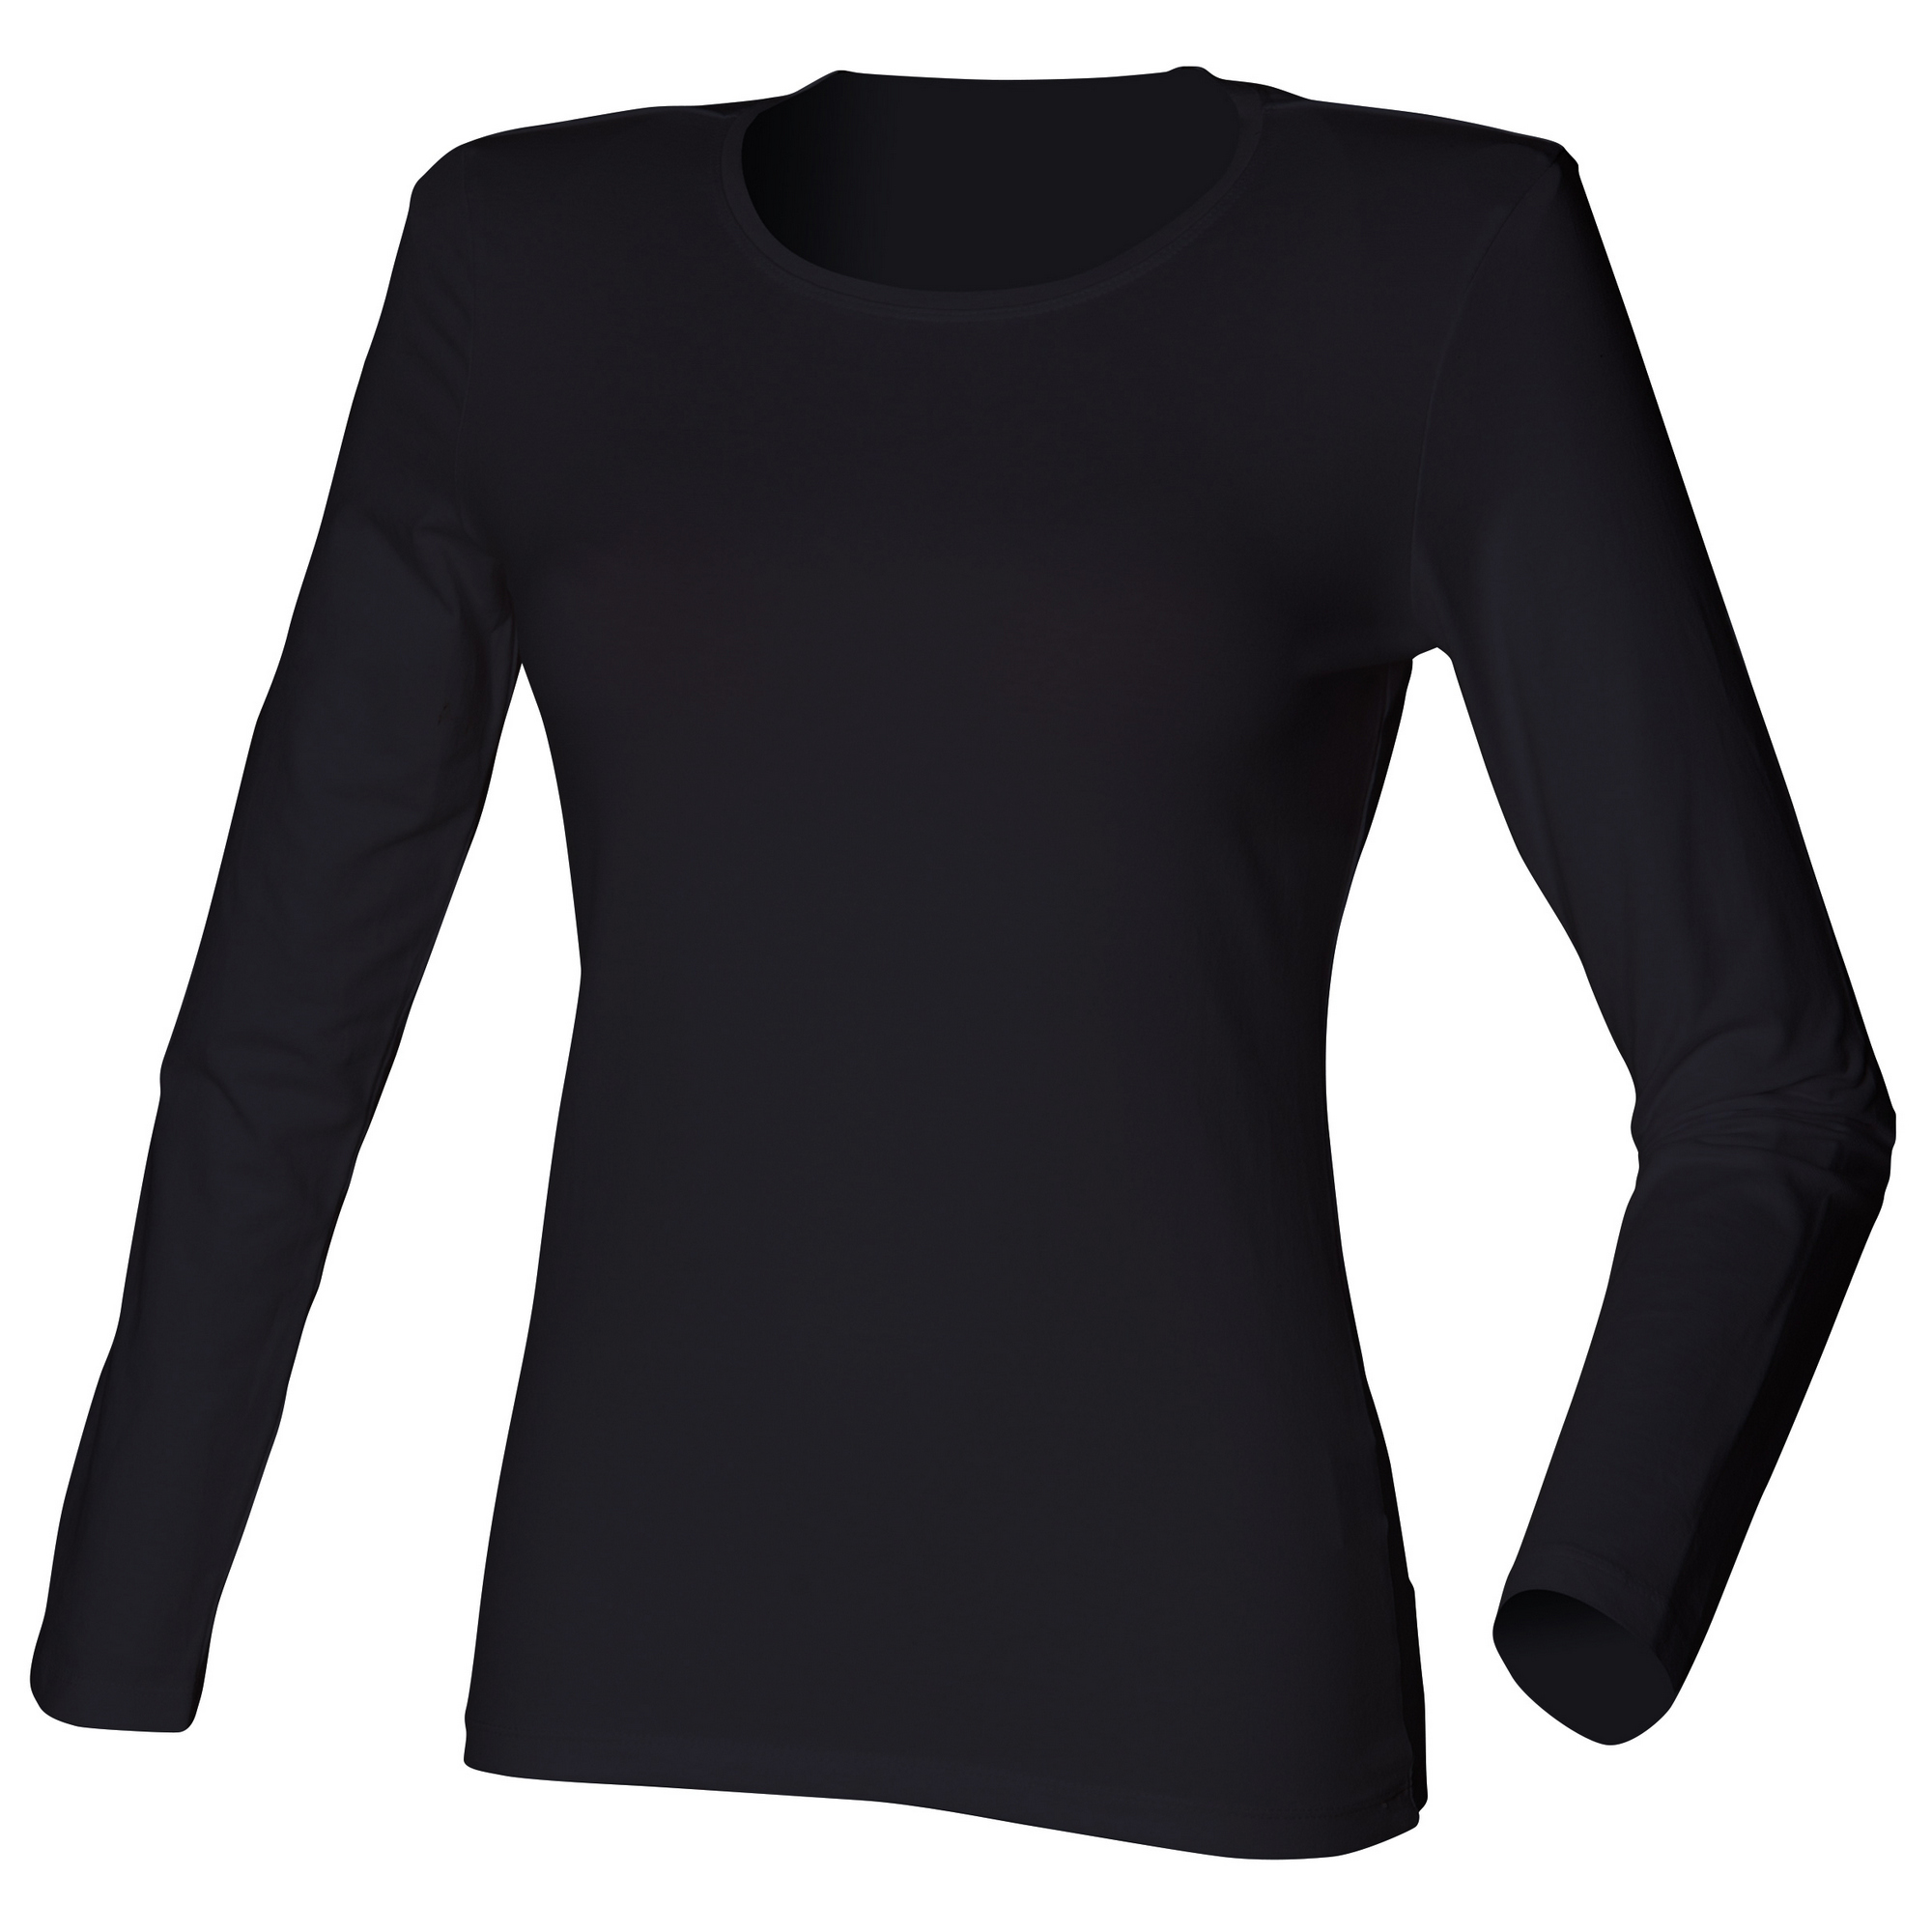 Skinni fit womens ladies long sleeve stretch t shirt ebay for Women s long sleeve fitted t shirts